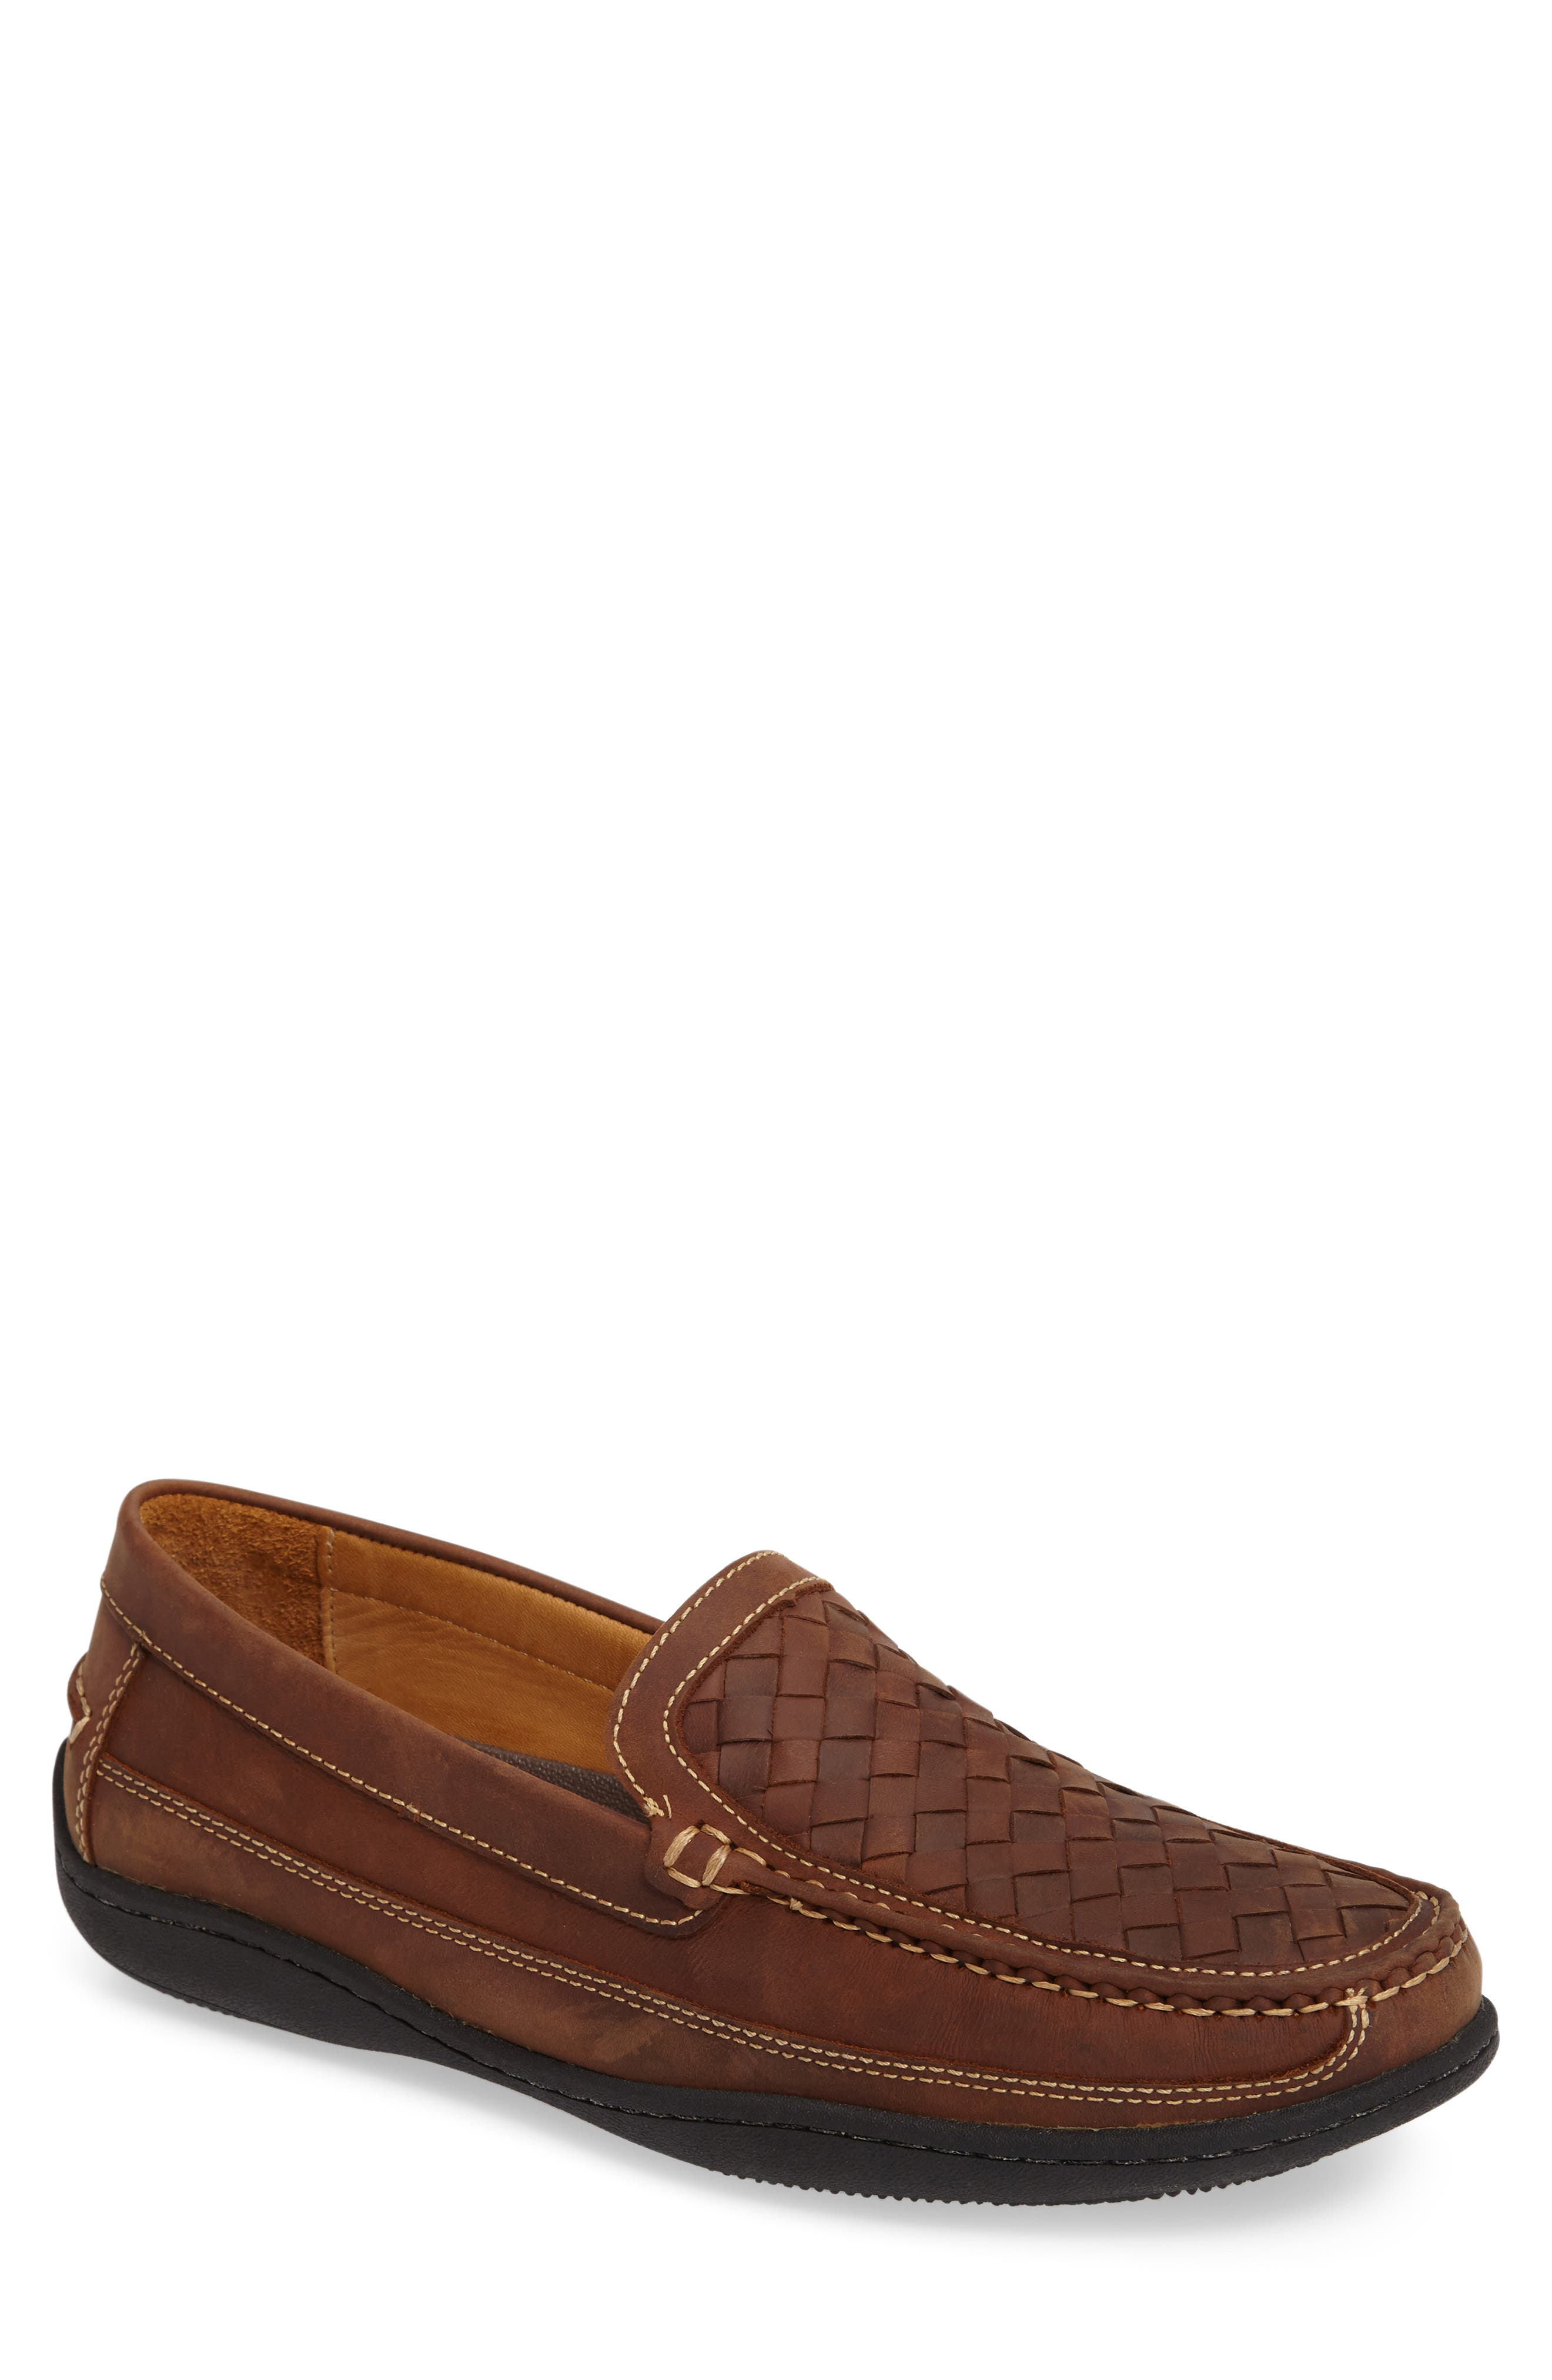 JOHNSTON & MURPHY Fowler Woven Loafer, Main, color, TAN LEATHER